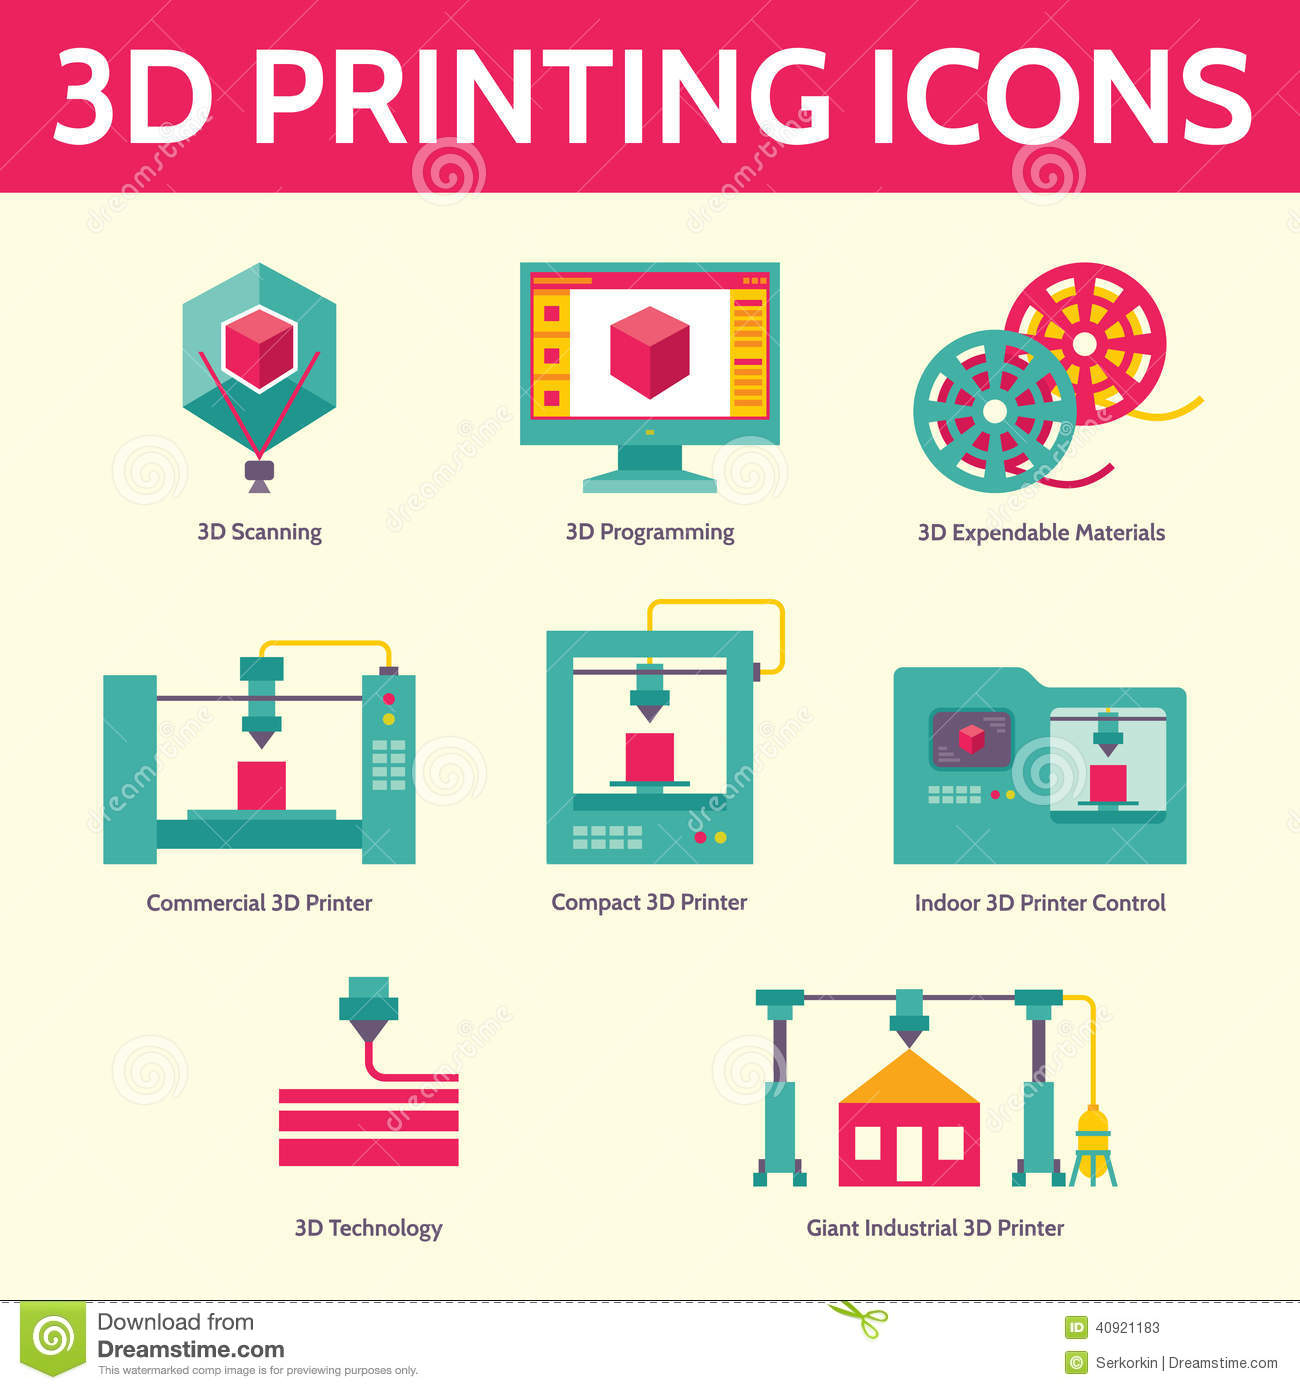 3D Printing Vector Icons In Flat Design Style Stock Vector